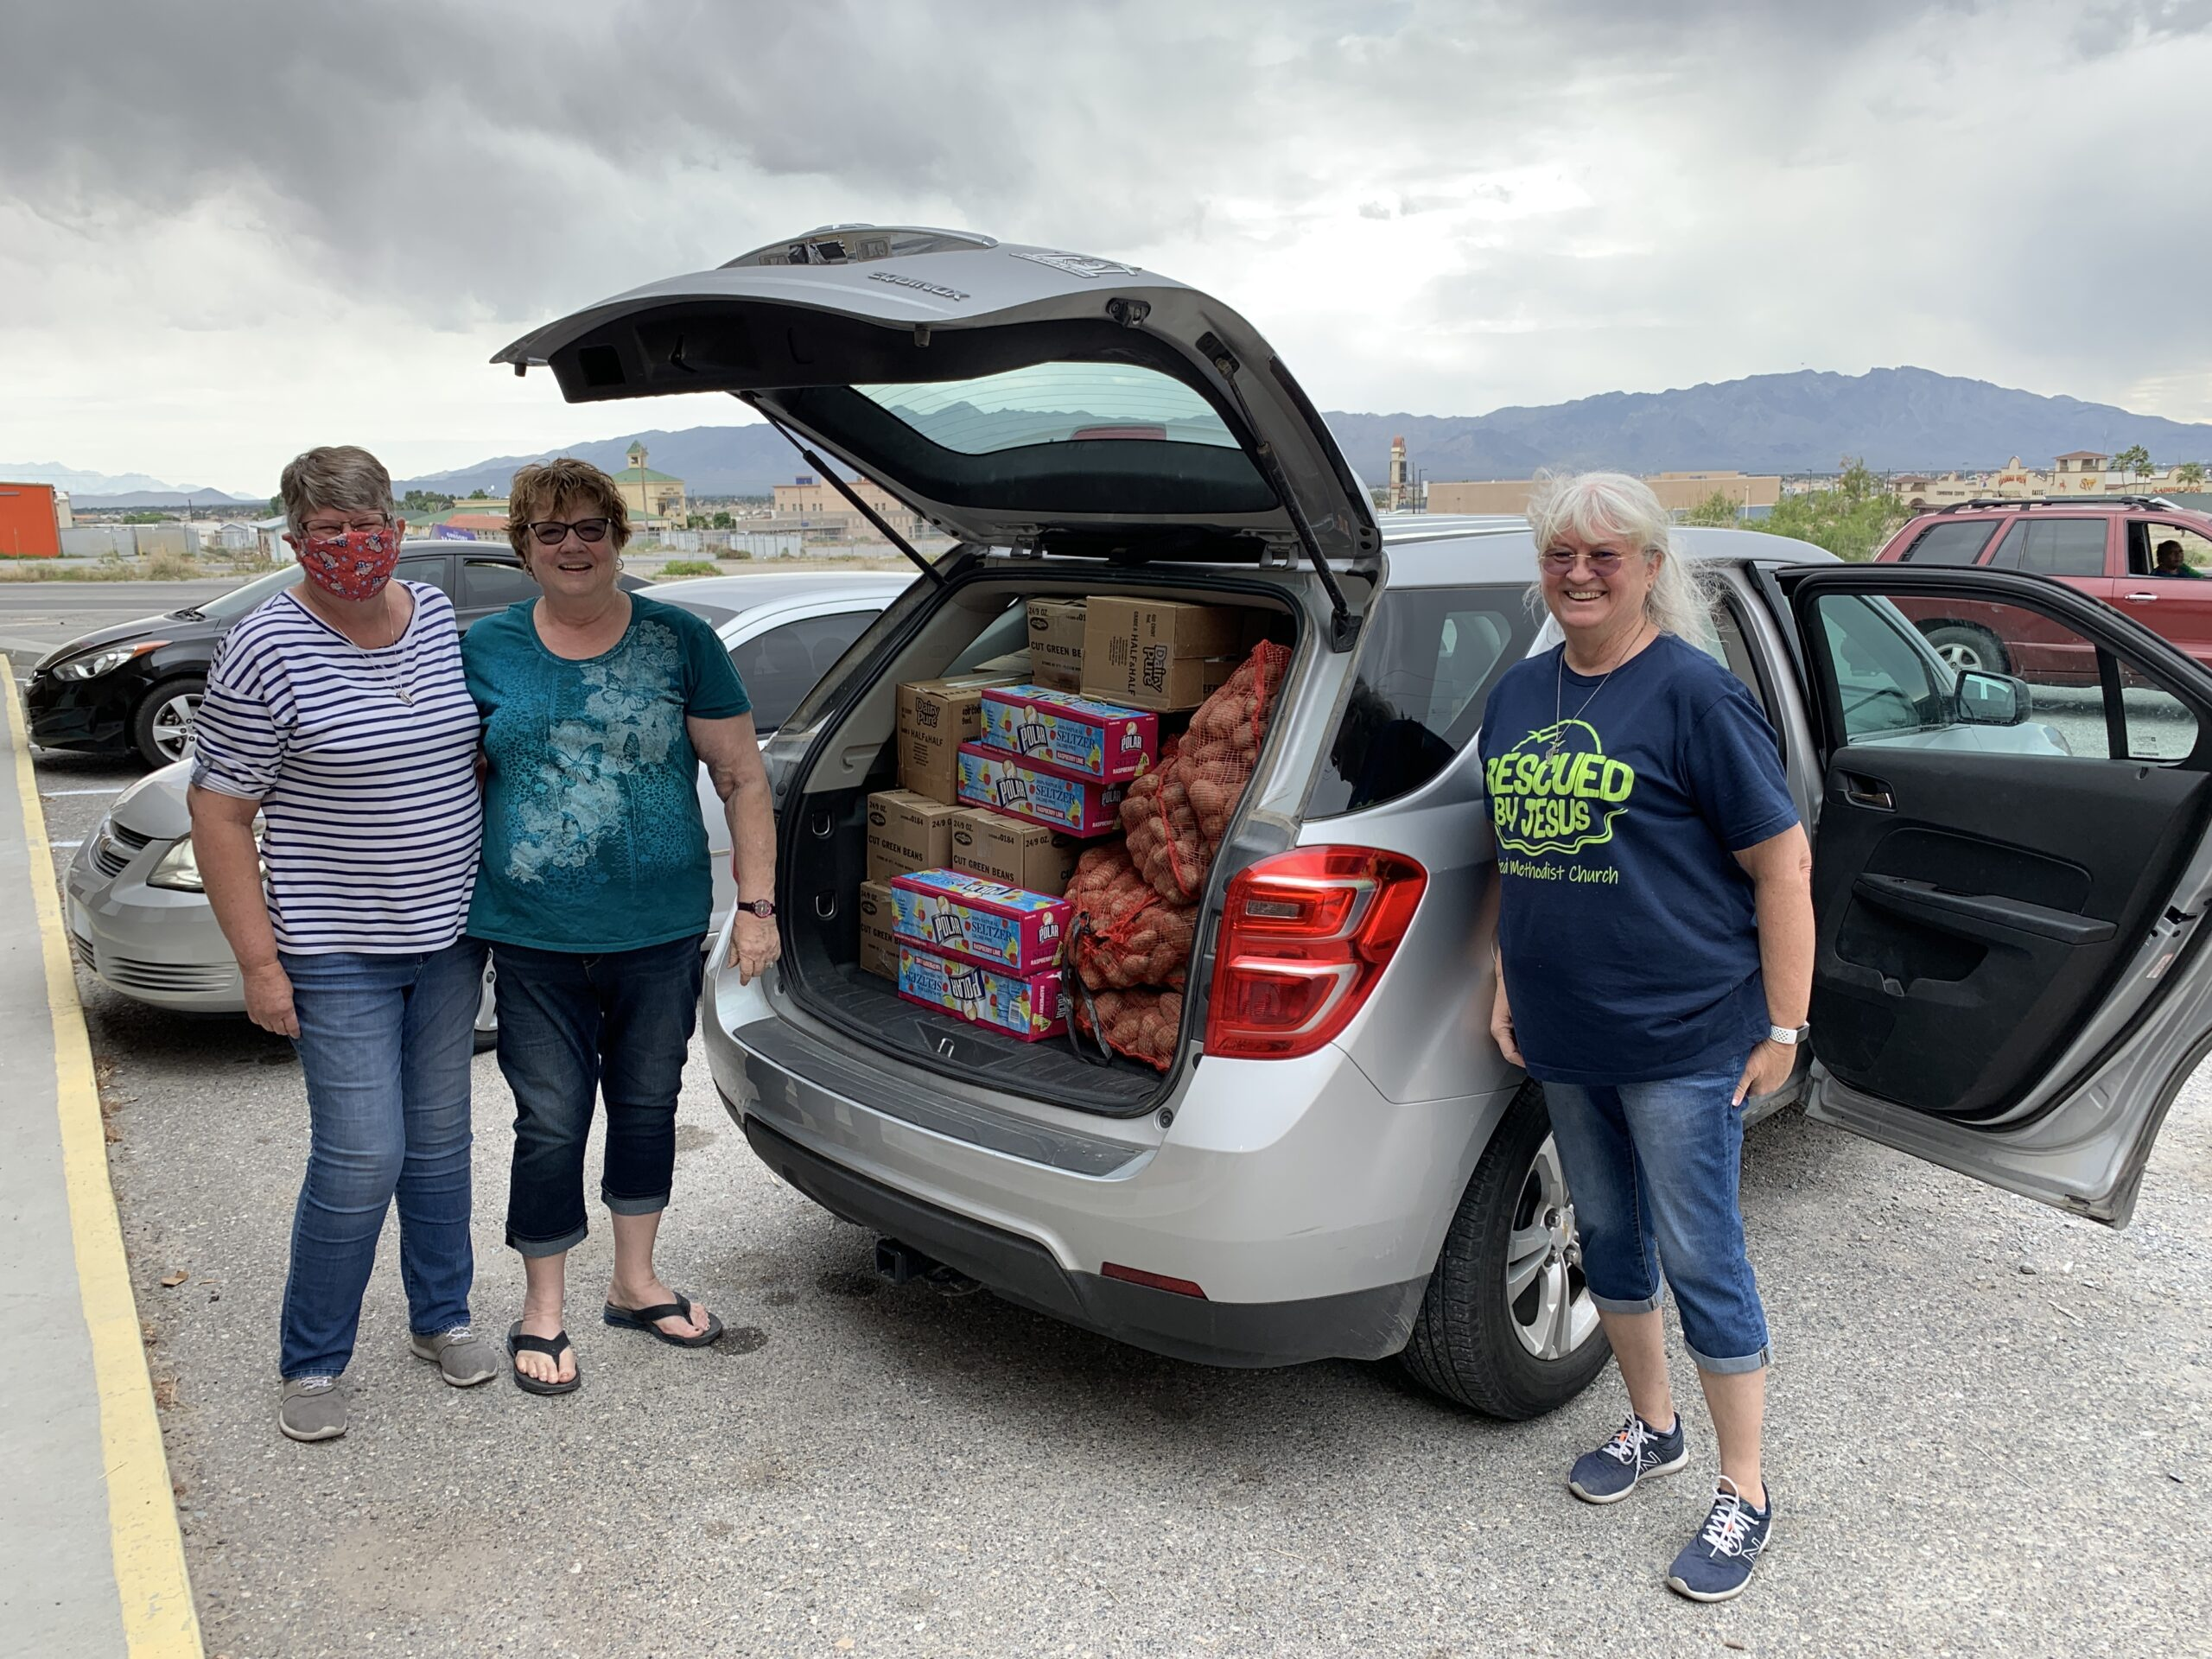 Stocking the Food Pantry